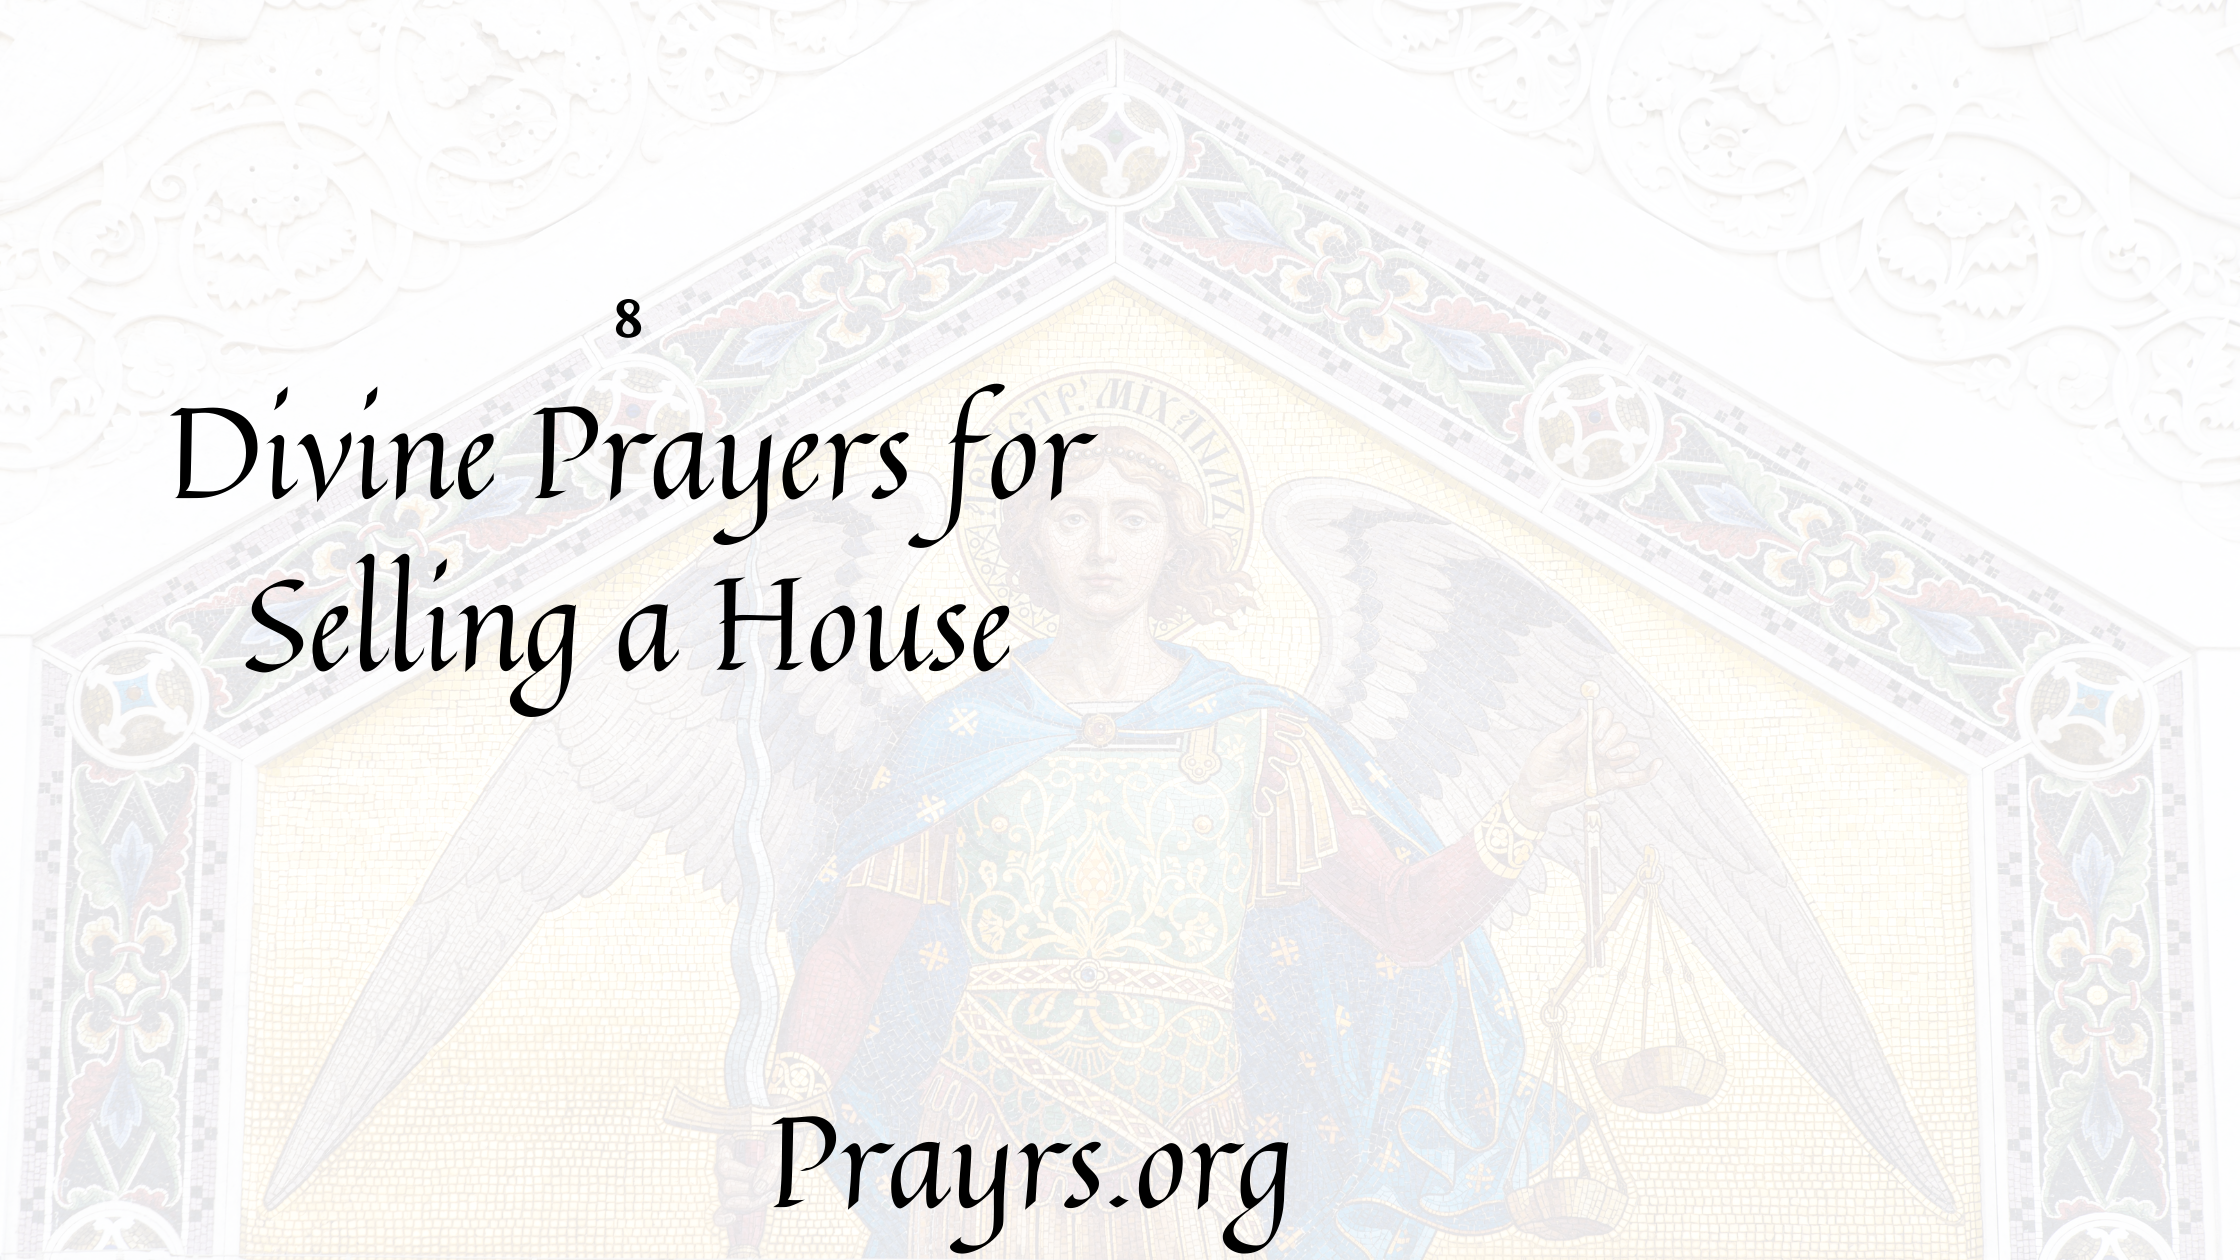 Divine Prayers for Selling a House